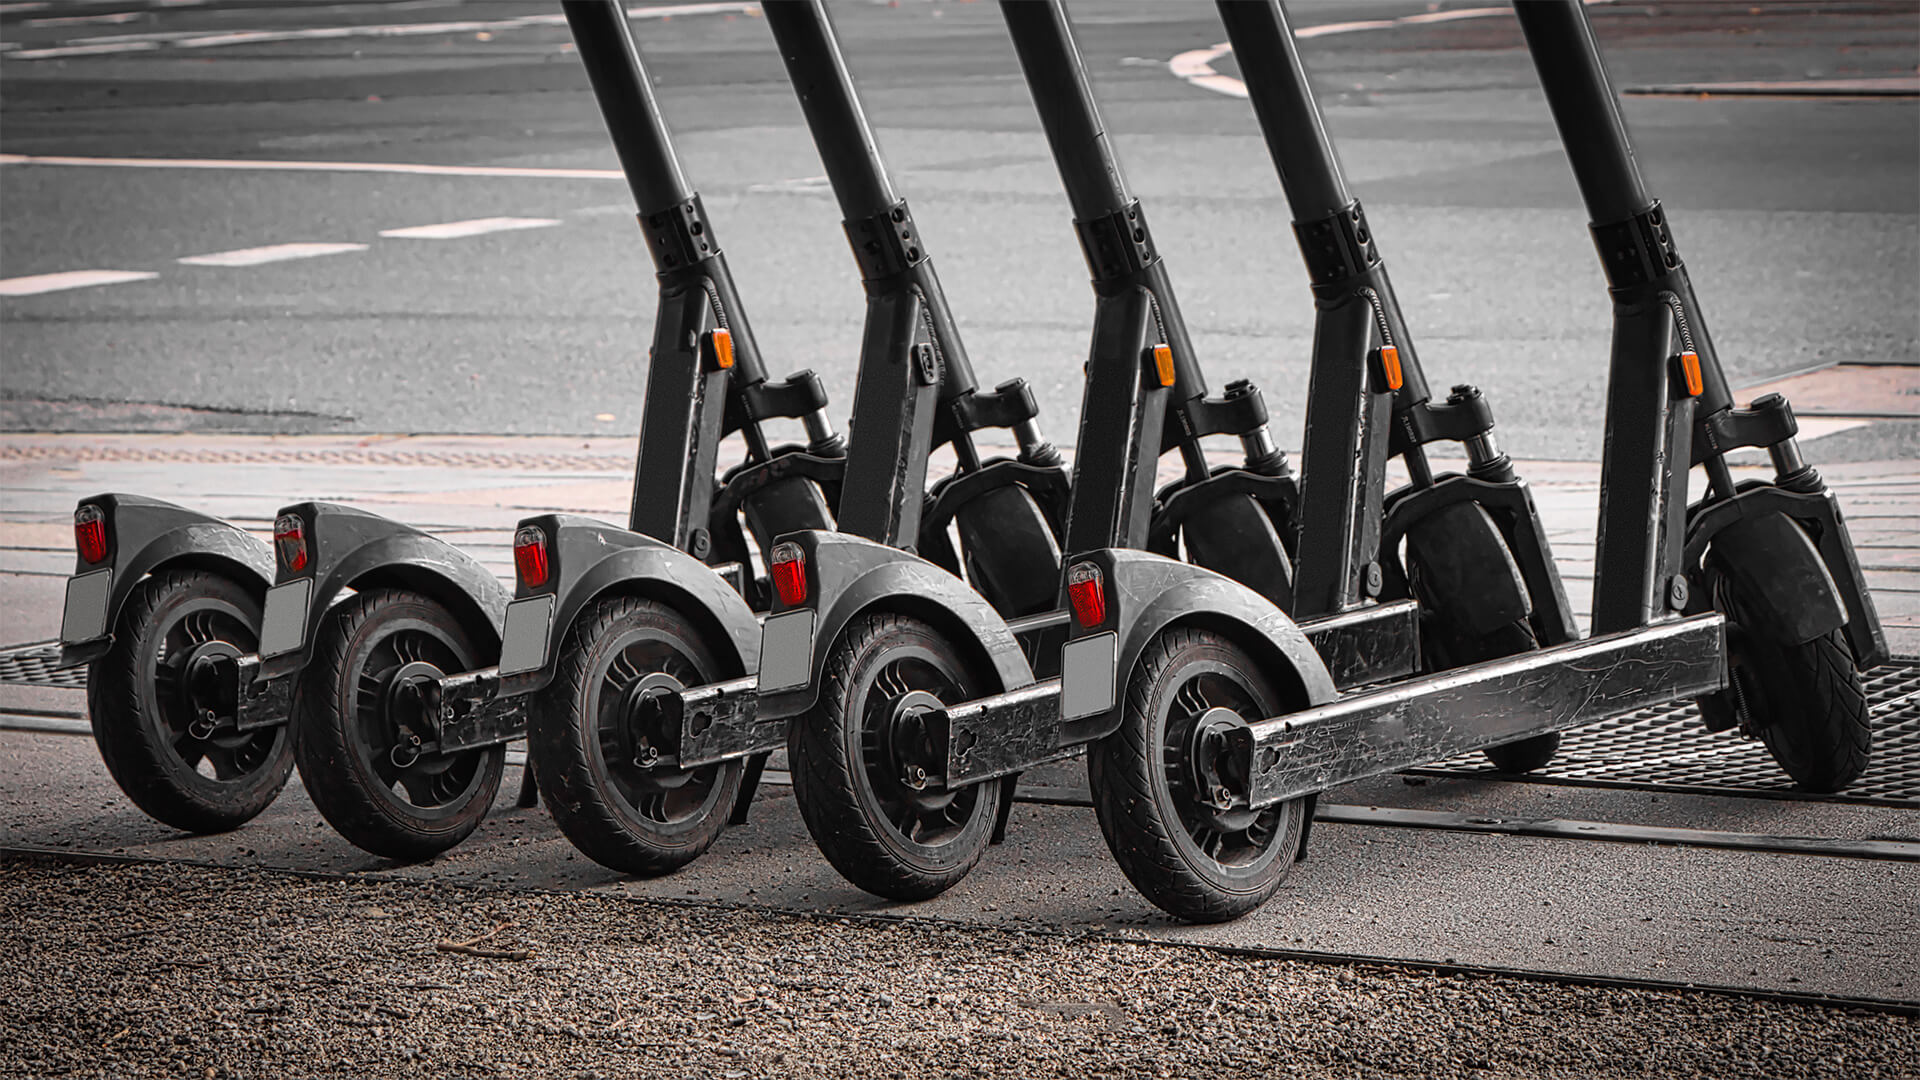 A Look at the Health & Safety Issues Involved in e-Scooter Trials